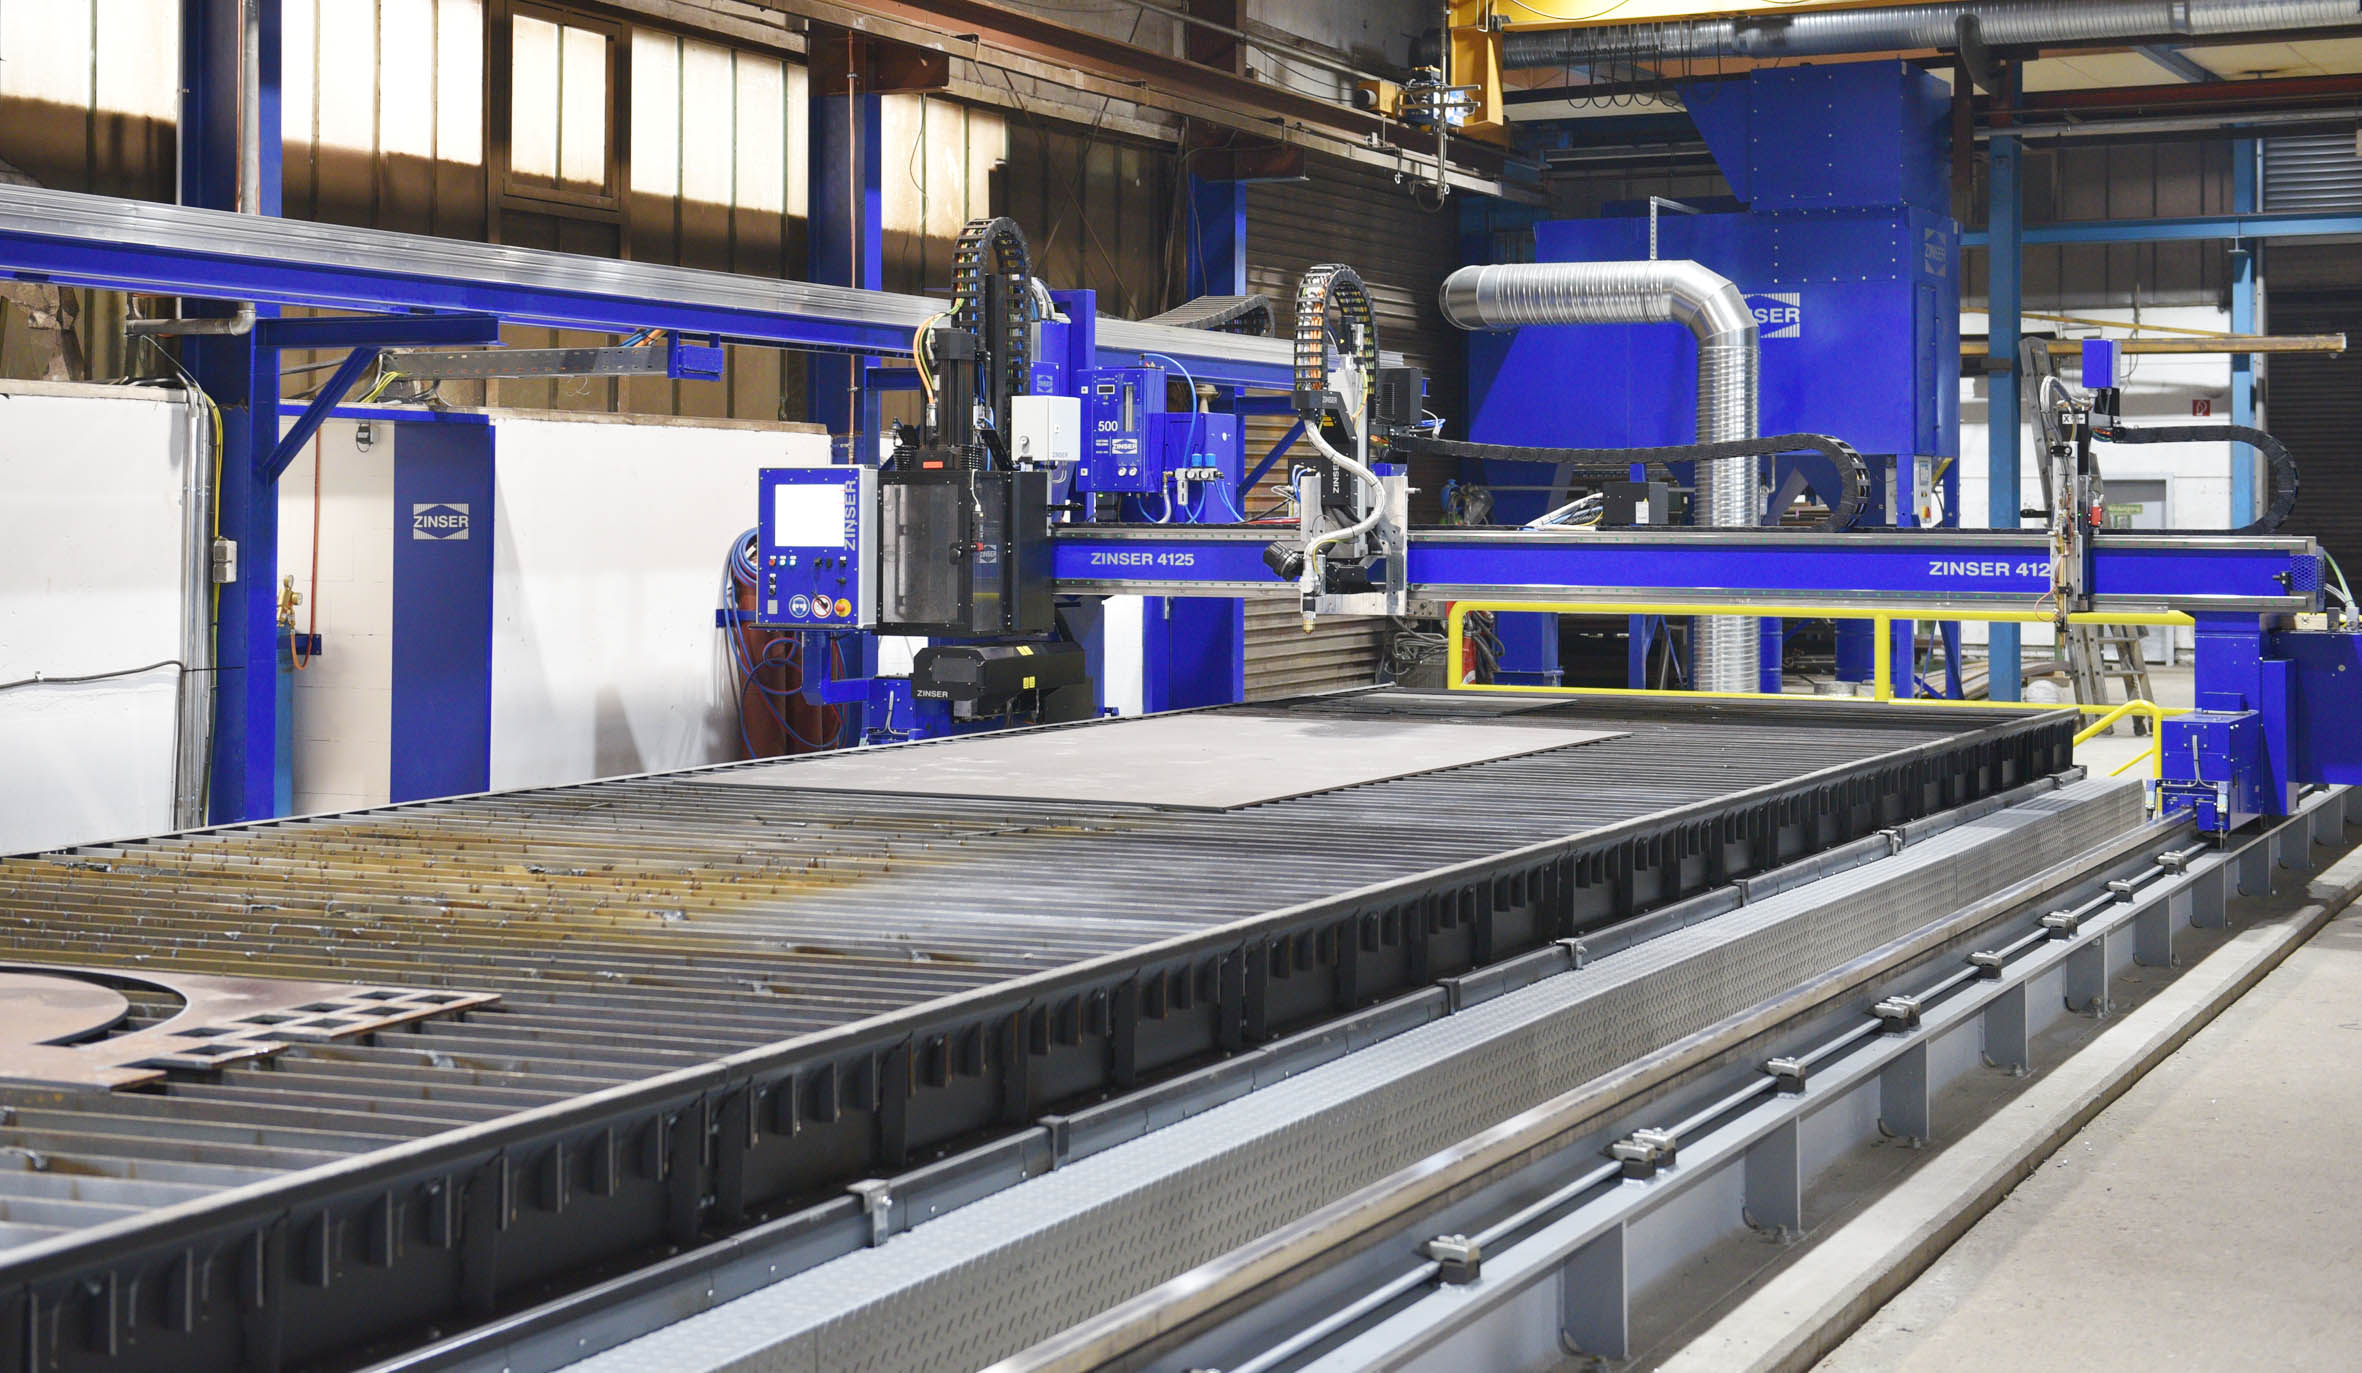 ZINSER 4125 CNC cutting machine with oxy-fuel torch, plasma torch and drilling unit over a ZINSER ZINtrac cutting table with oscillating conveyor